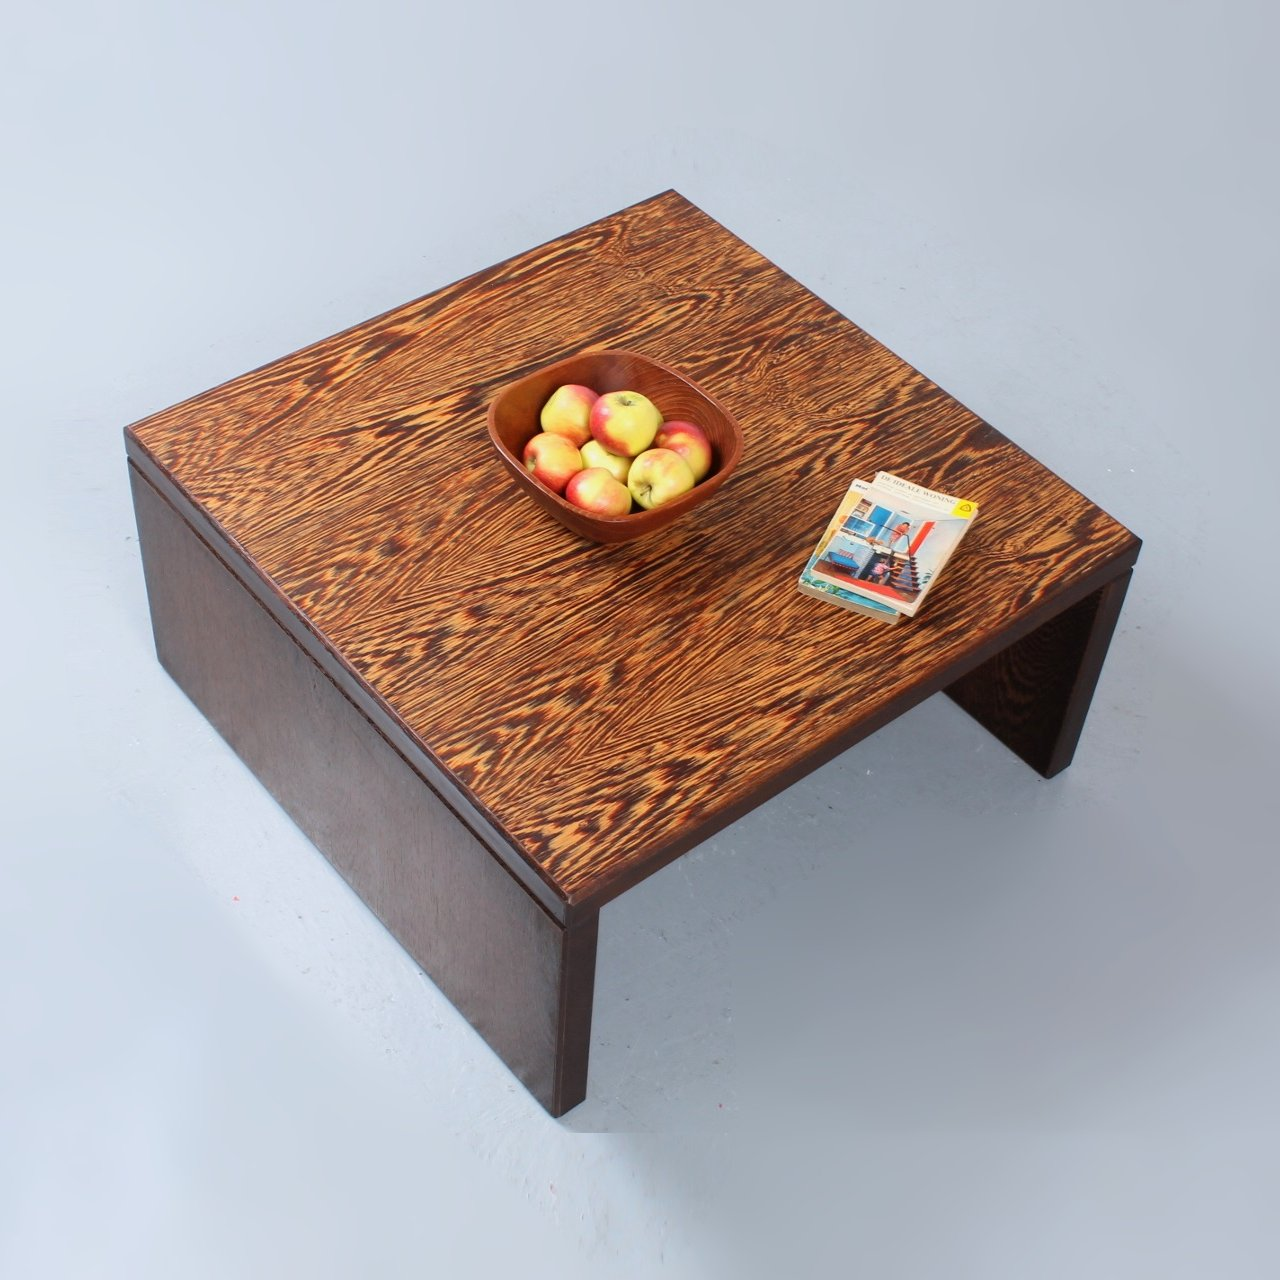 Solid Square Wenge Wood Coffee Table Or Bench 99420